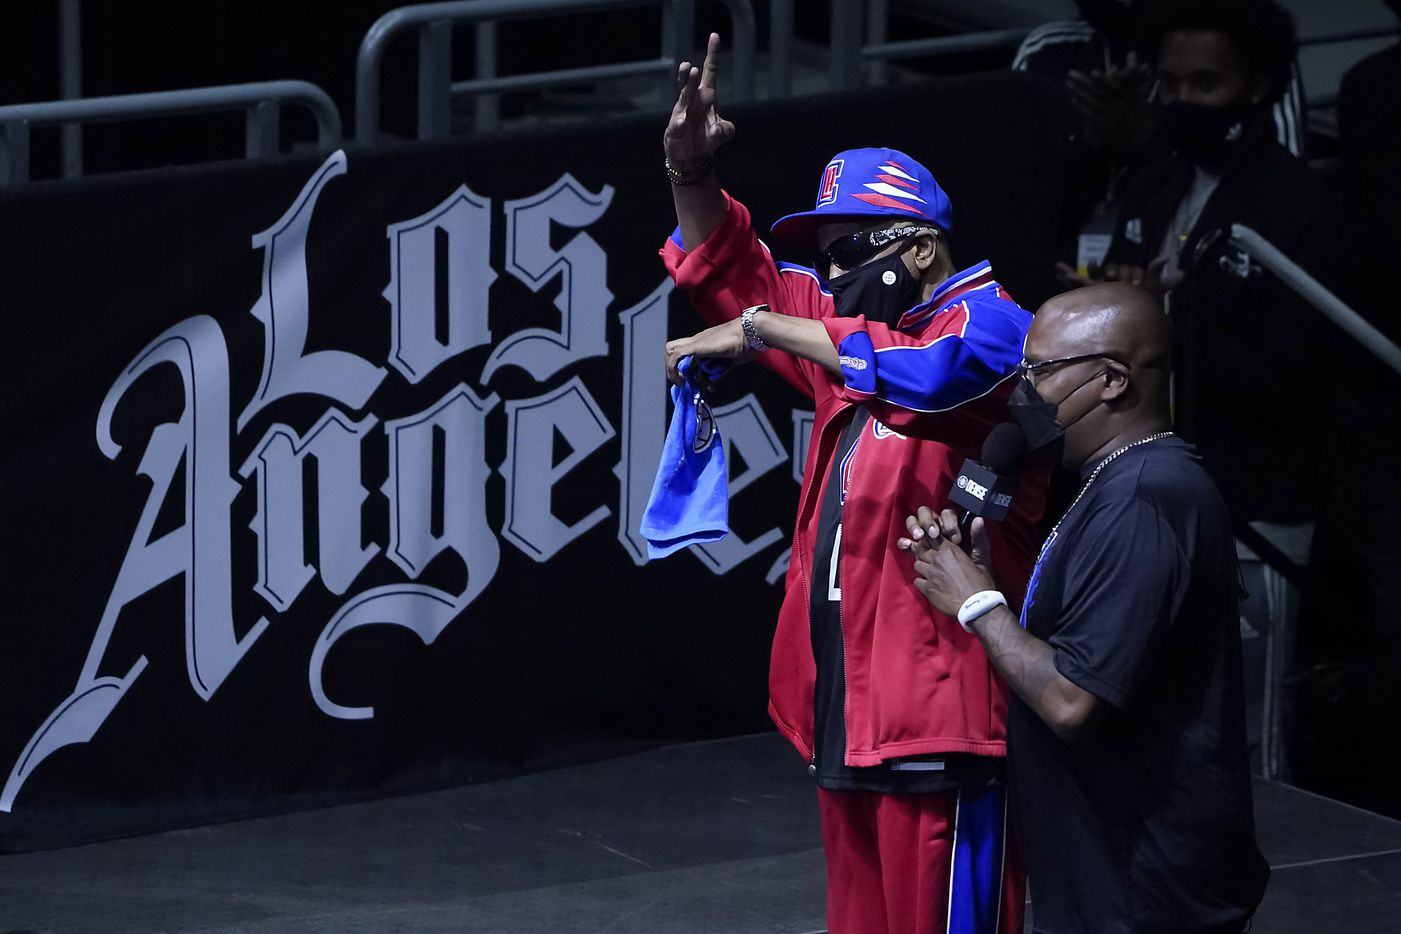 Rapper Tone Loc motions to the crowed during the first half of an NBA playoff basketball game between the Dallas Mavericks and the LA Clippers at Staples Center on Tuesday, May 25, 2021, in Los Angeles.